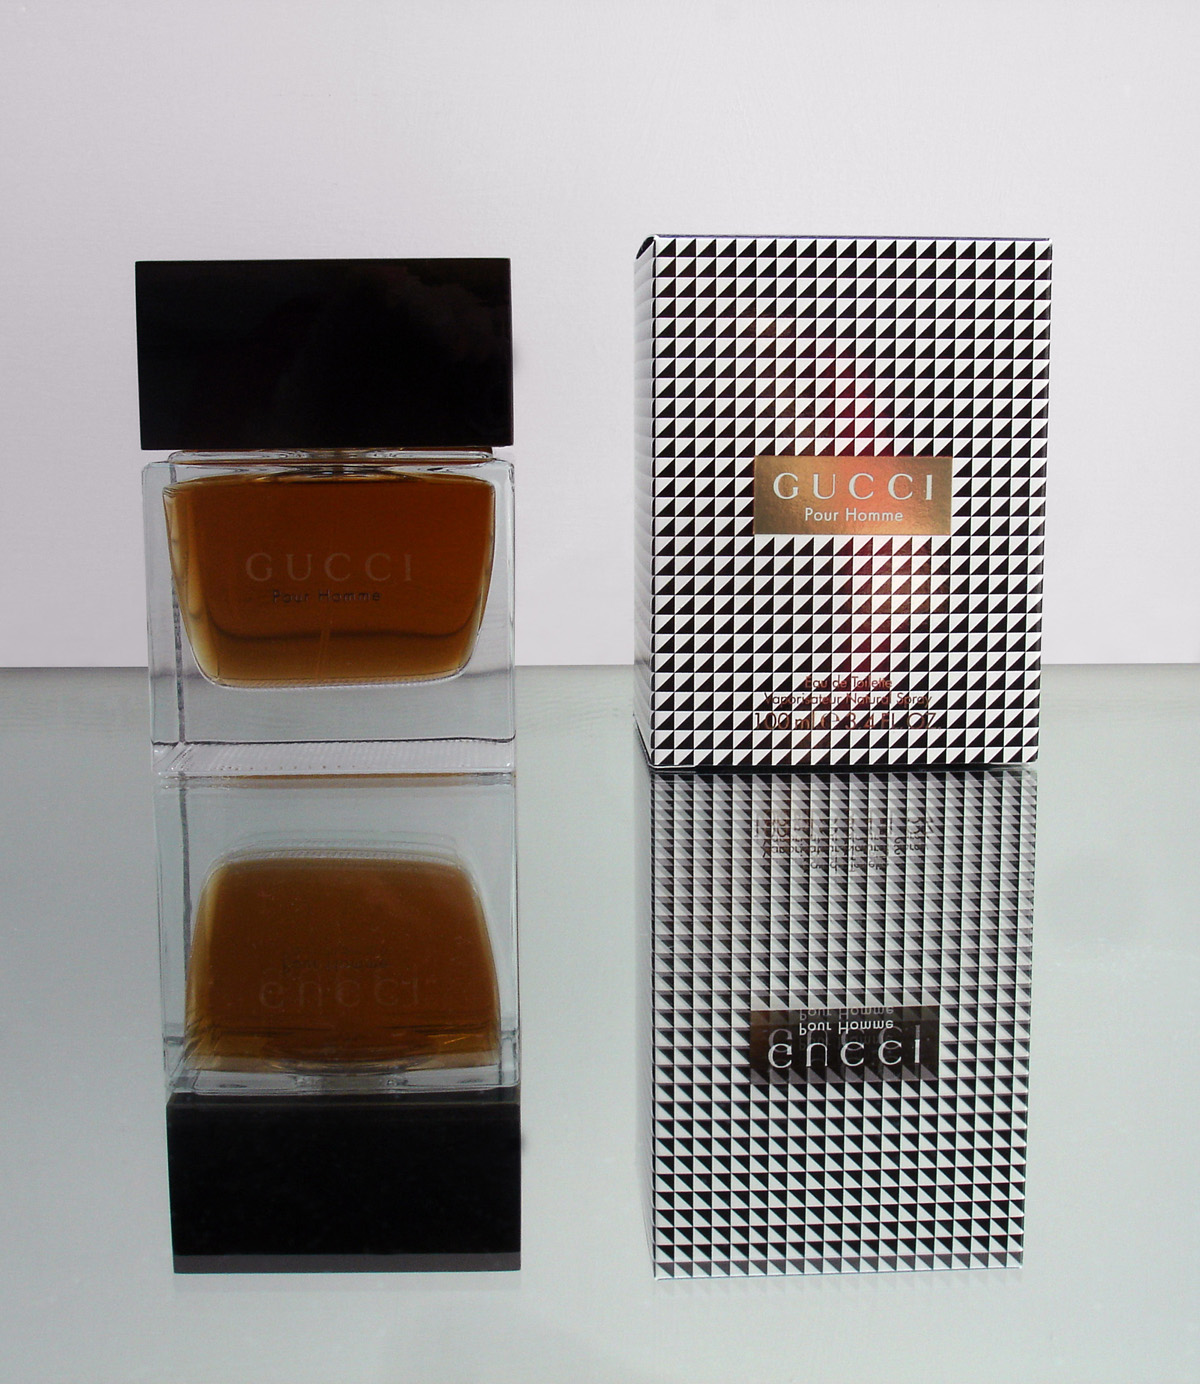 The original Gucci Pour Homme created by Tom Ford has been discontinued in